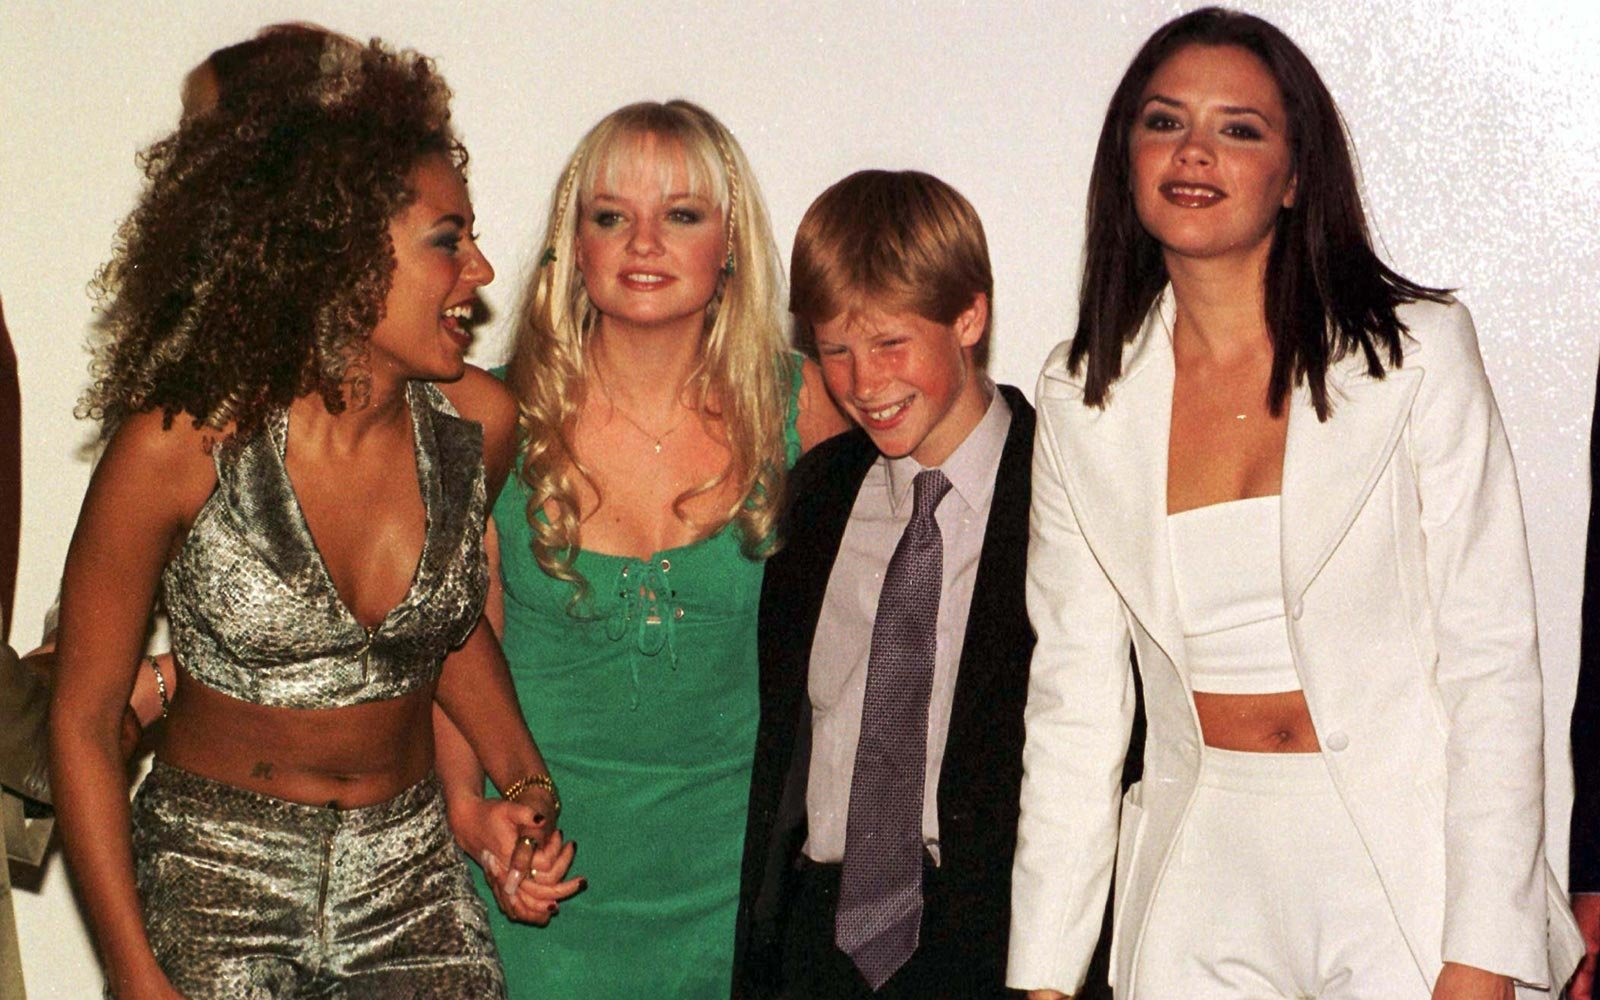 Spice Girls to perform at Harry and Meghan's wedding